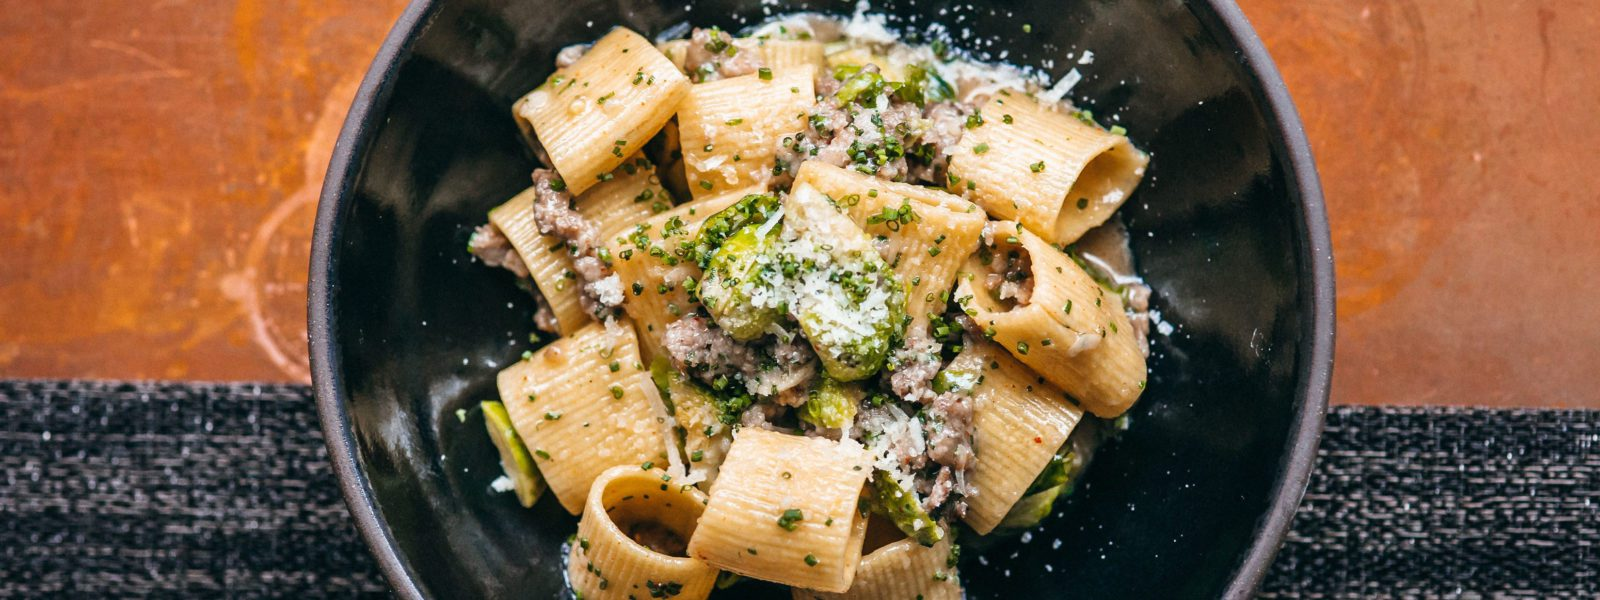 Rigatoni dish with fresh grated cheese and chives.